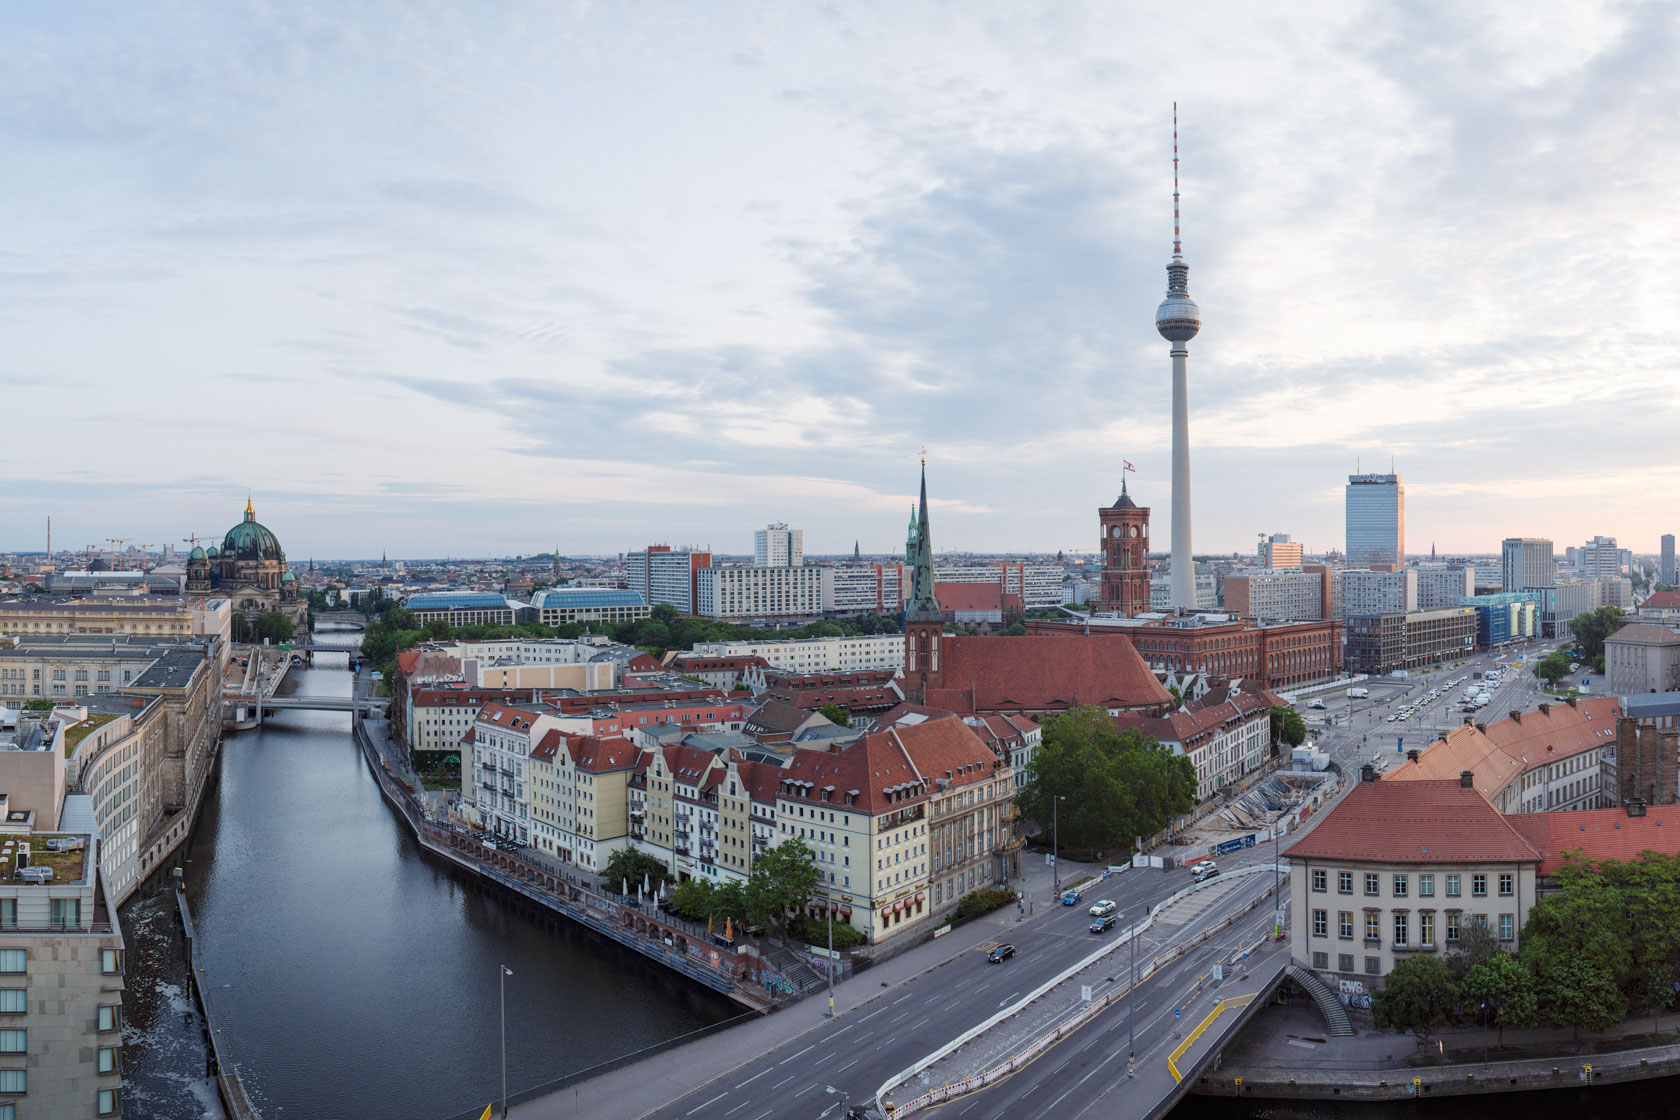 The television tower and other buildings in Berlin